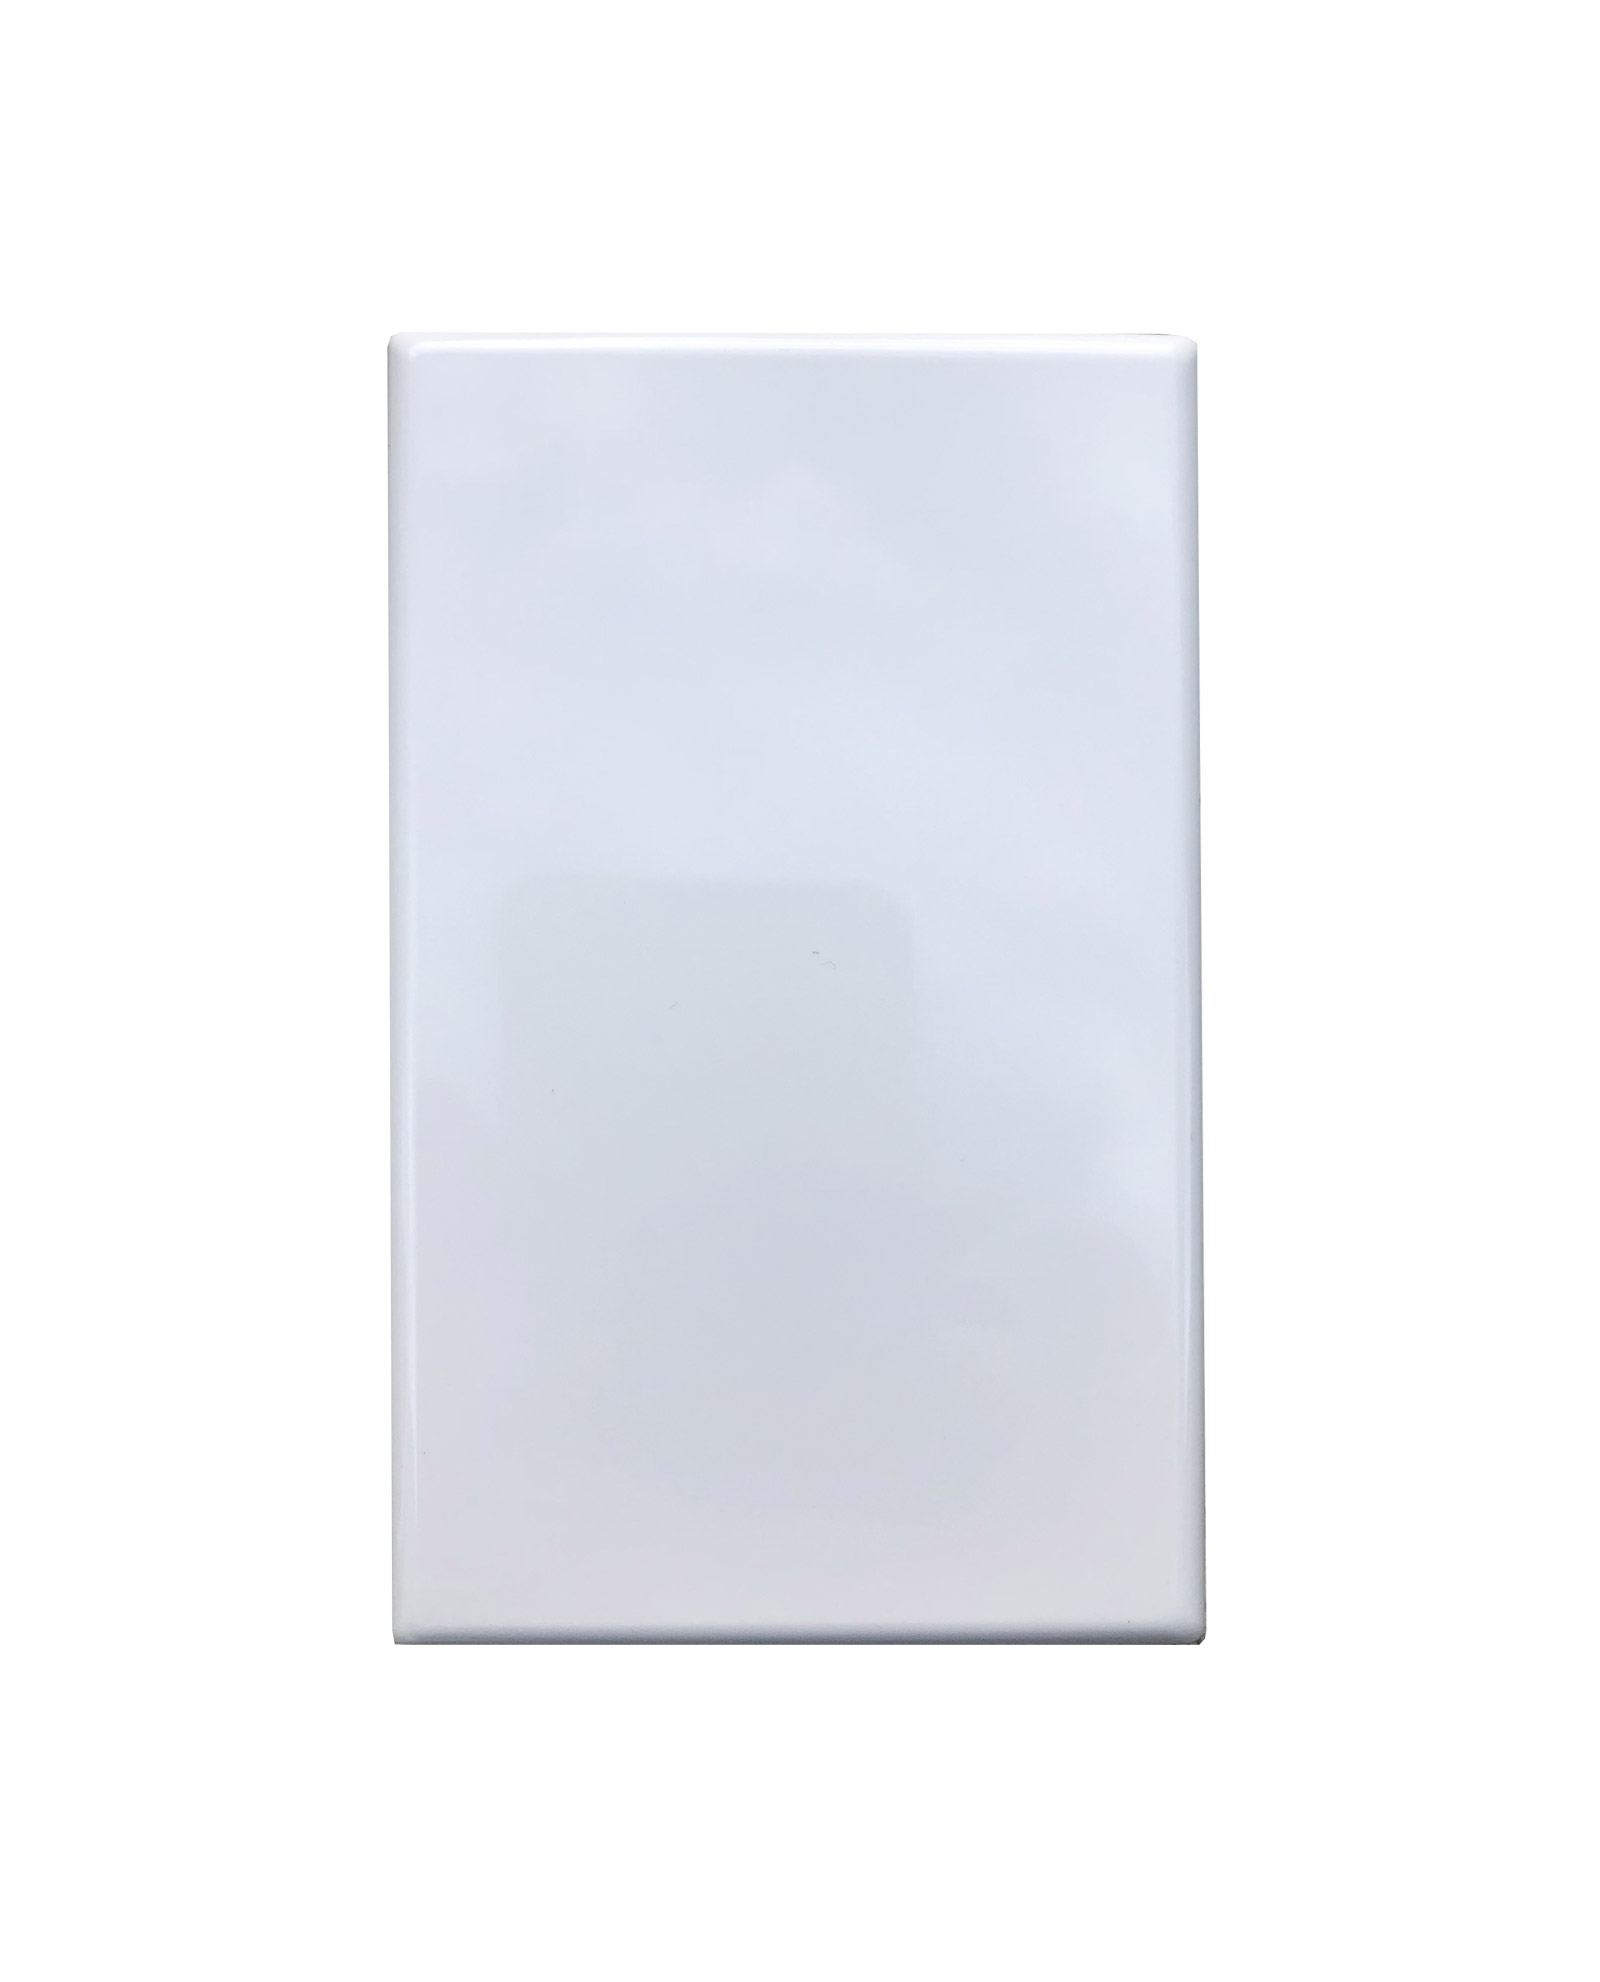 Pdl 600 Series 650bvh Blank Cover Plate